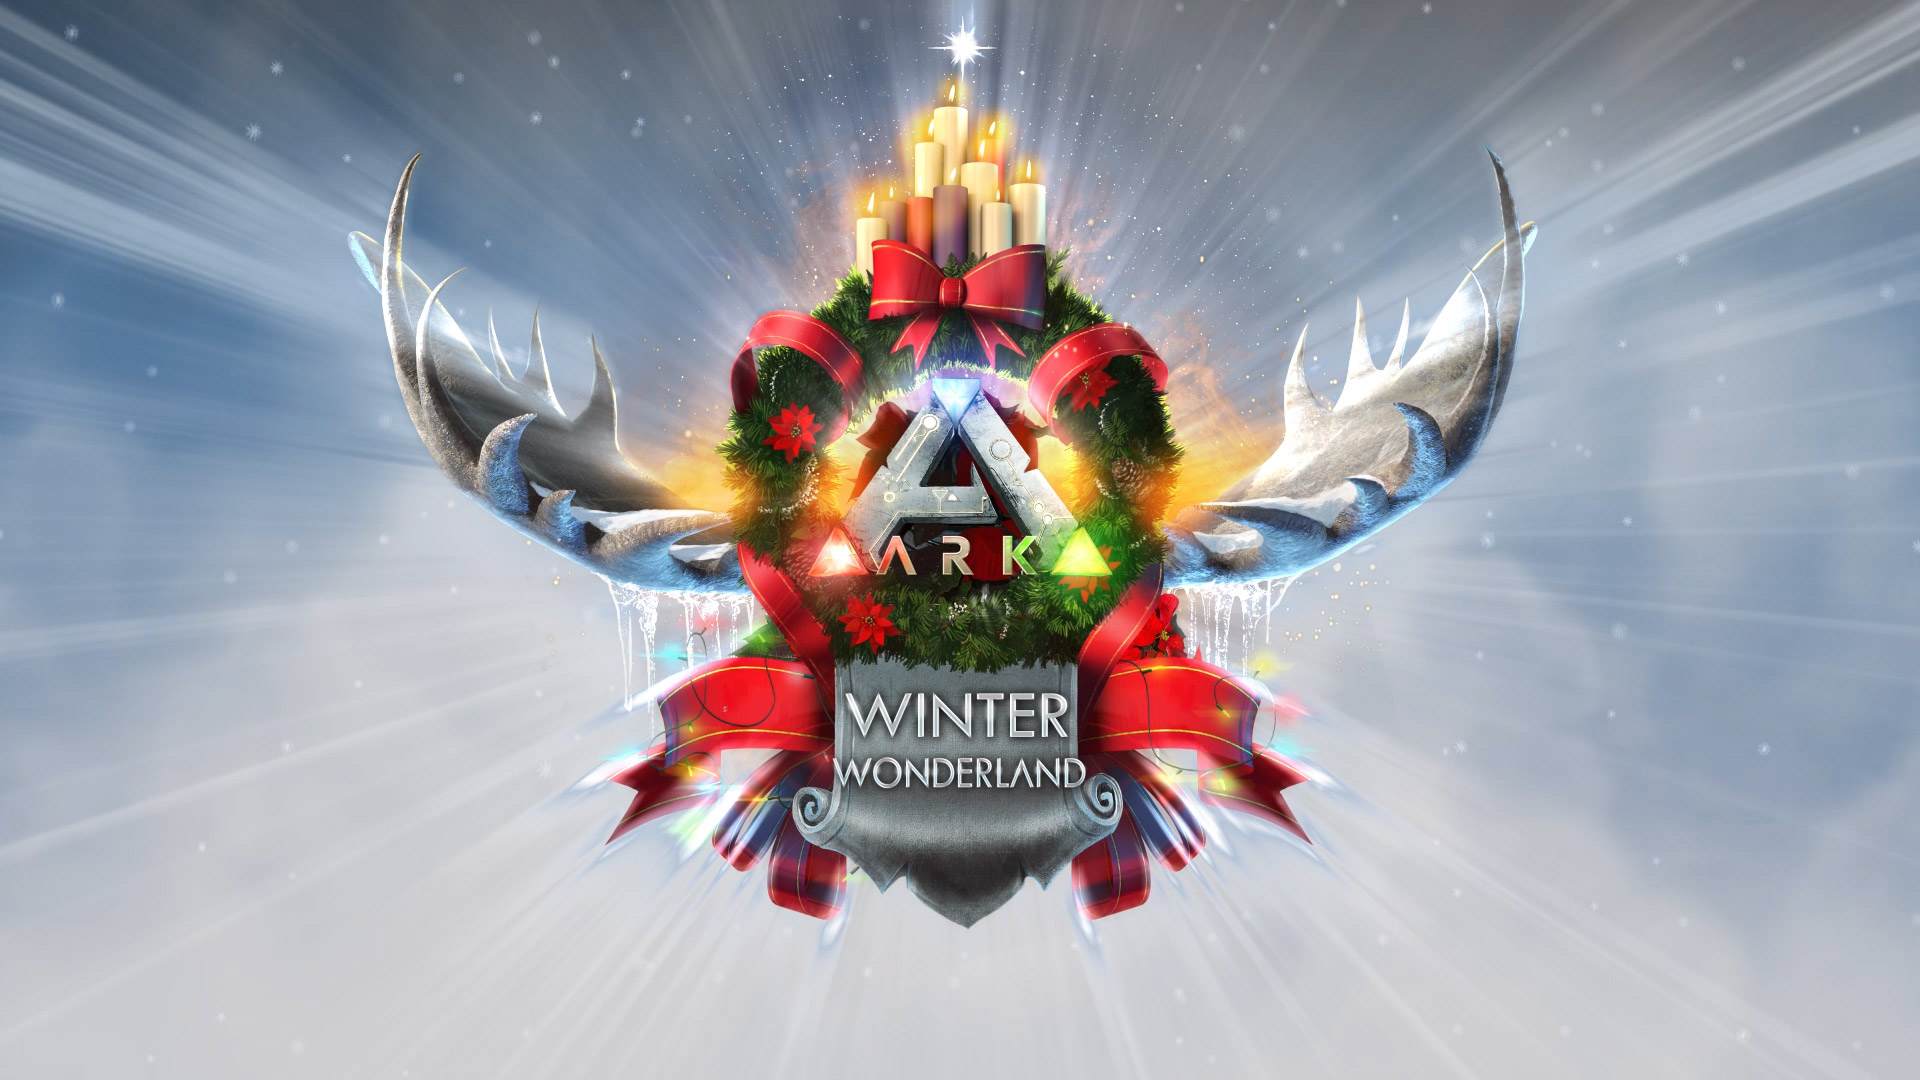 dont forget that winter wonderland is here but it wont be around forever this winter themed holiday event ends on january 7th so be sure to get your fill